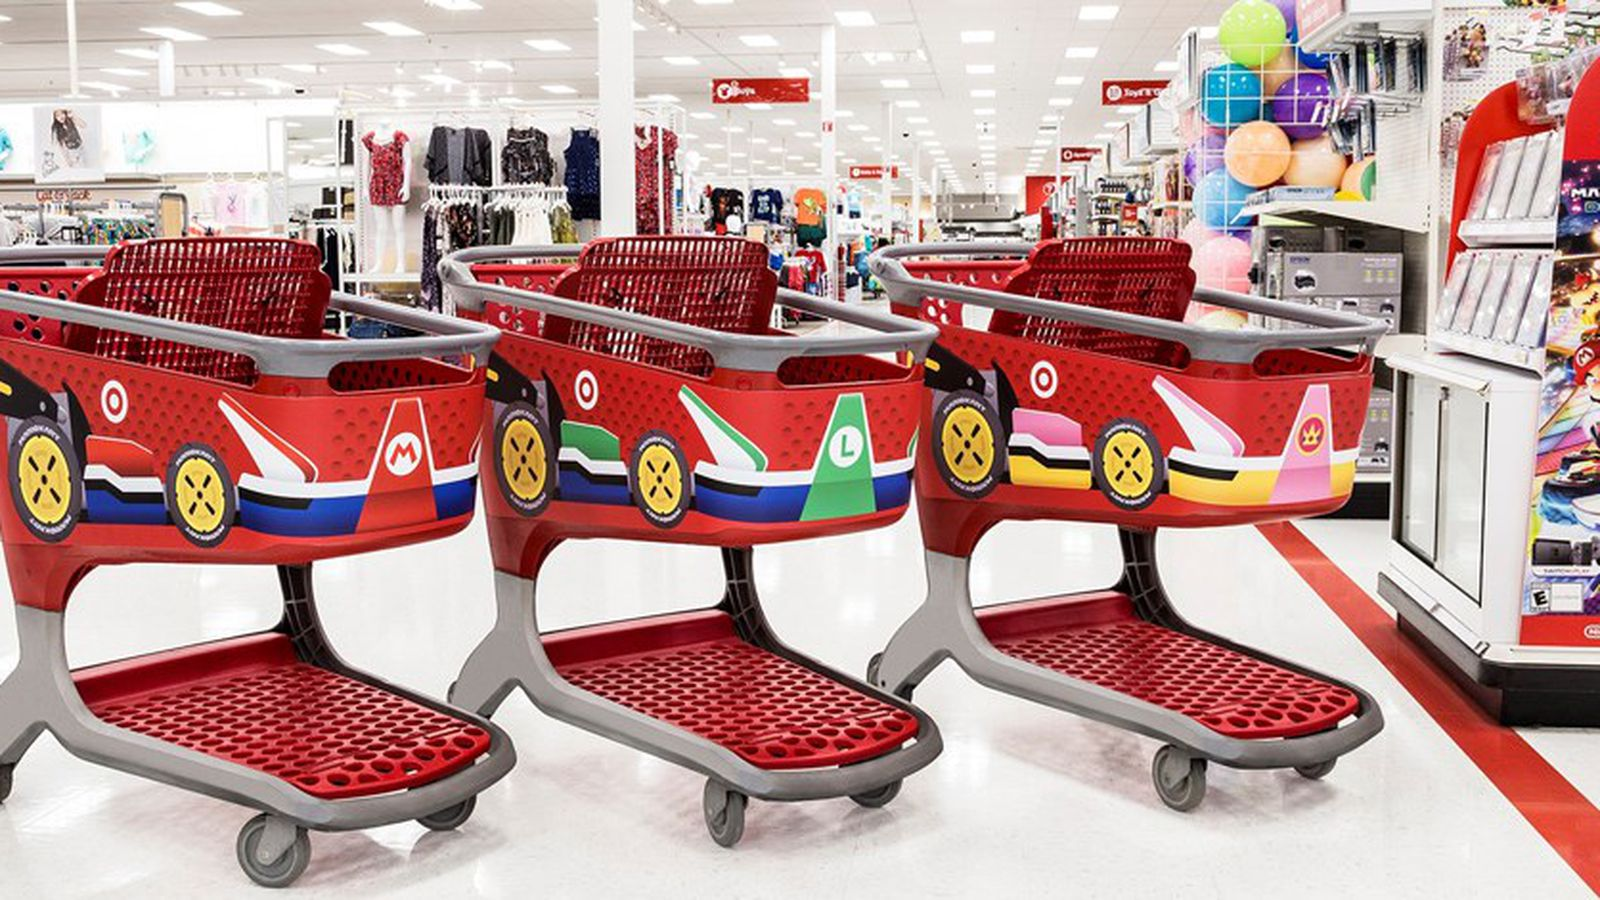 Mario Kart has invaded Target, and it's stressing me out